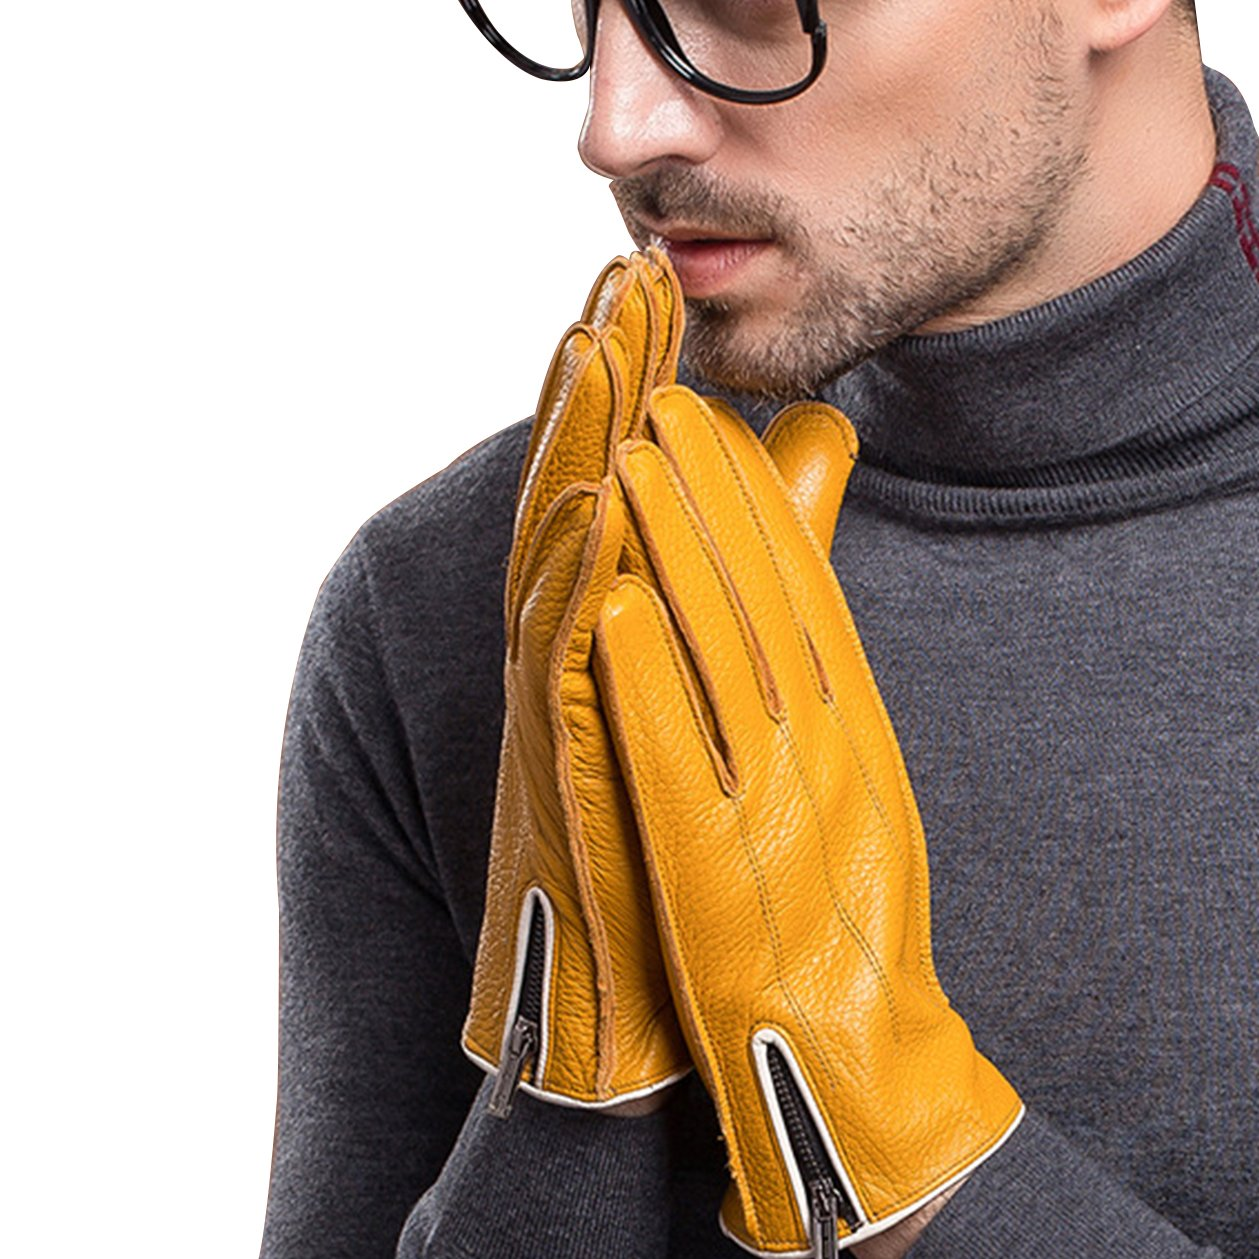 Leather gloves winter warm fashion simple business sheepskin gloves yellow classic for men size M